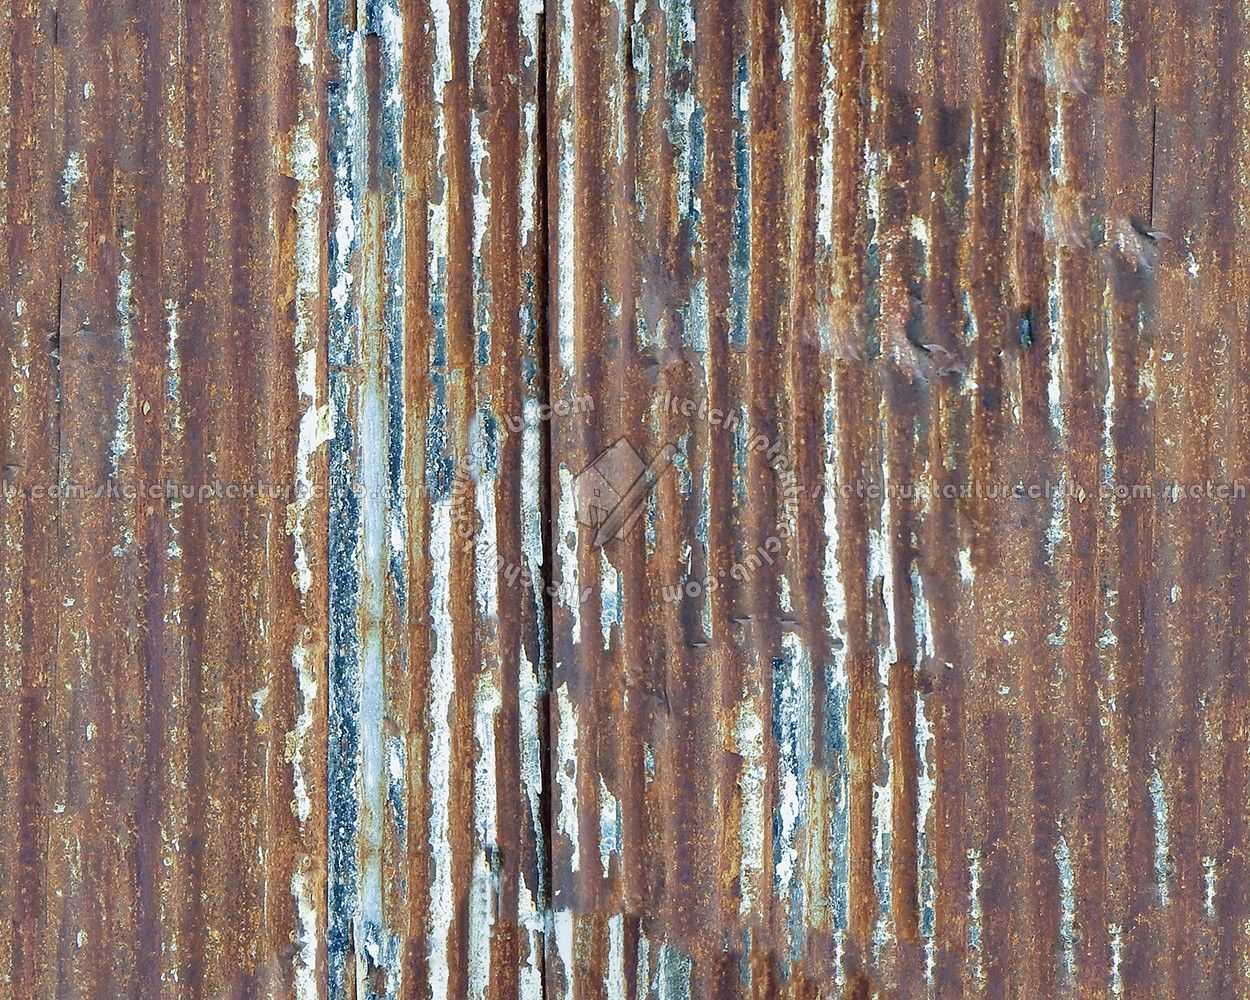 0070 Iron Corrugated Dirt Rusty Metal Texture Seamless